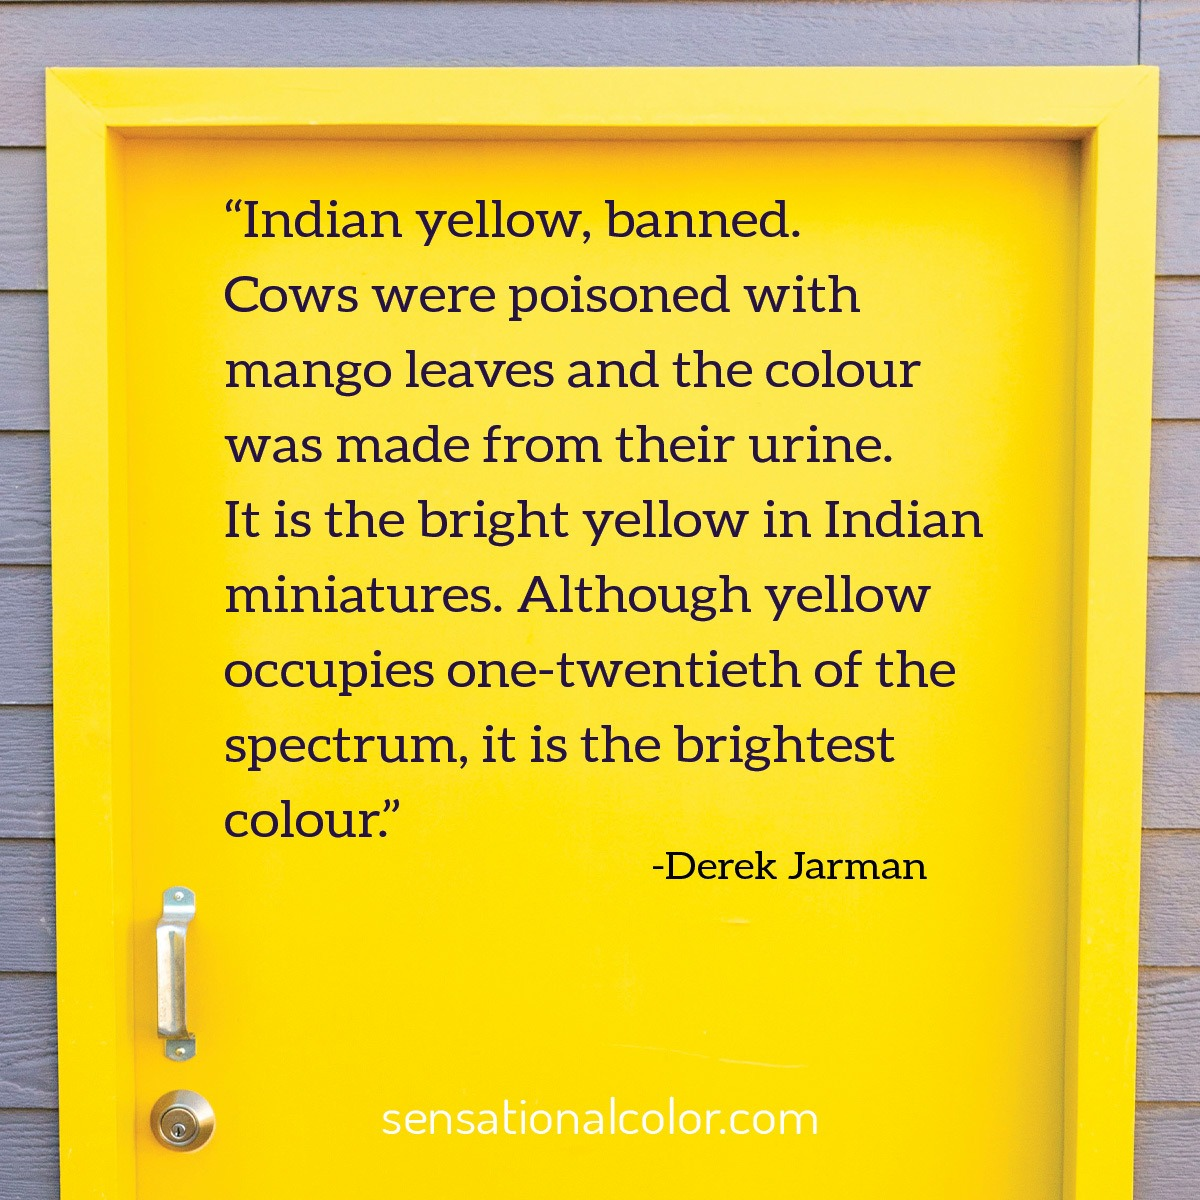 """Indian yellow, banned. Cows were poisoned with mango leaves and the colour was made from their urine. It is the bright yellow in Indian miniatures. Although yellow occupies one-twentieth of the spectrum, it is the brightest colour."" - Michael Derek Elworthy"